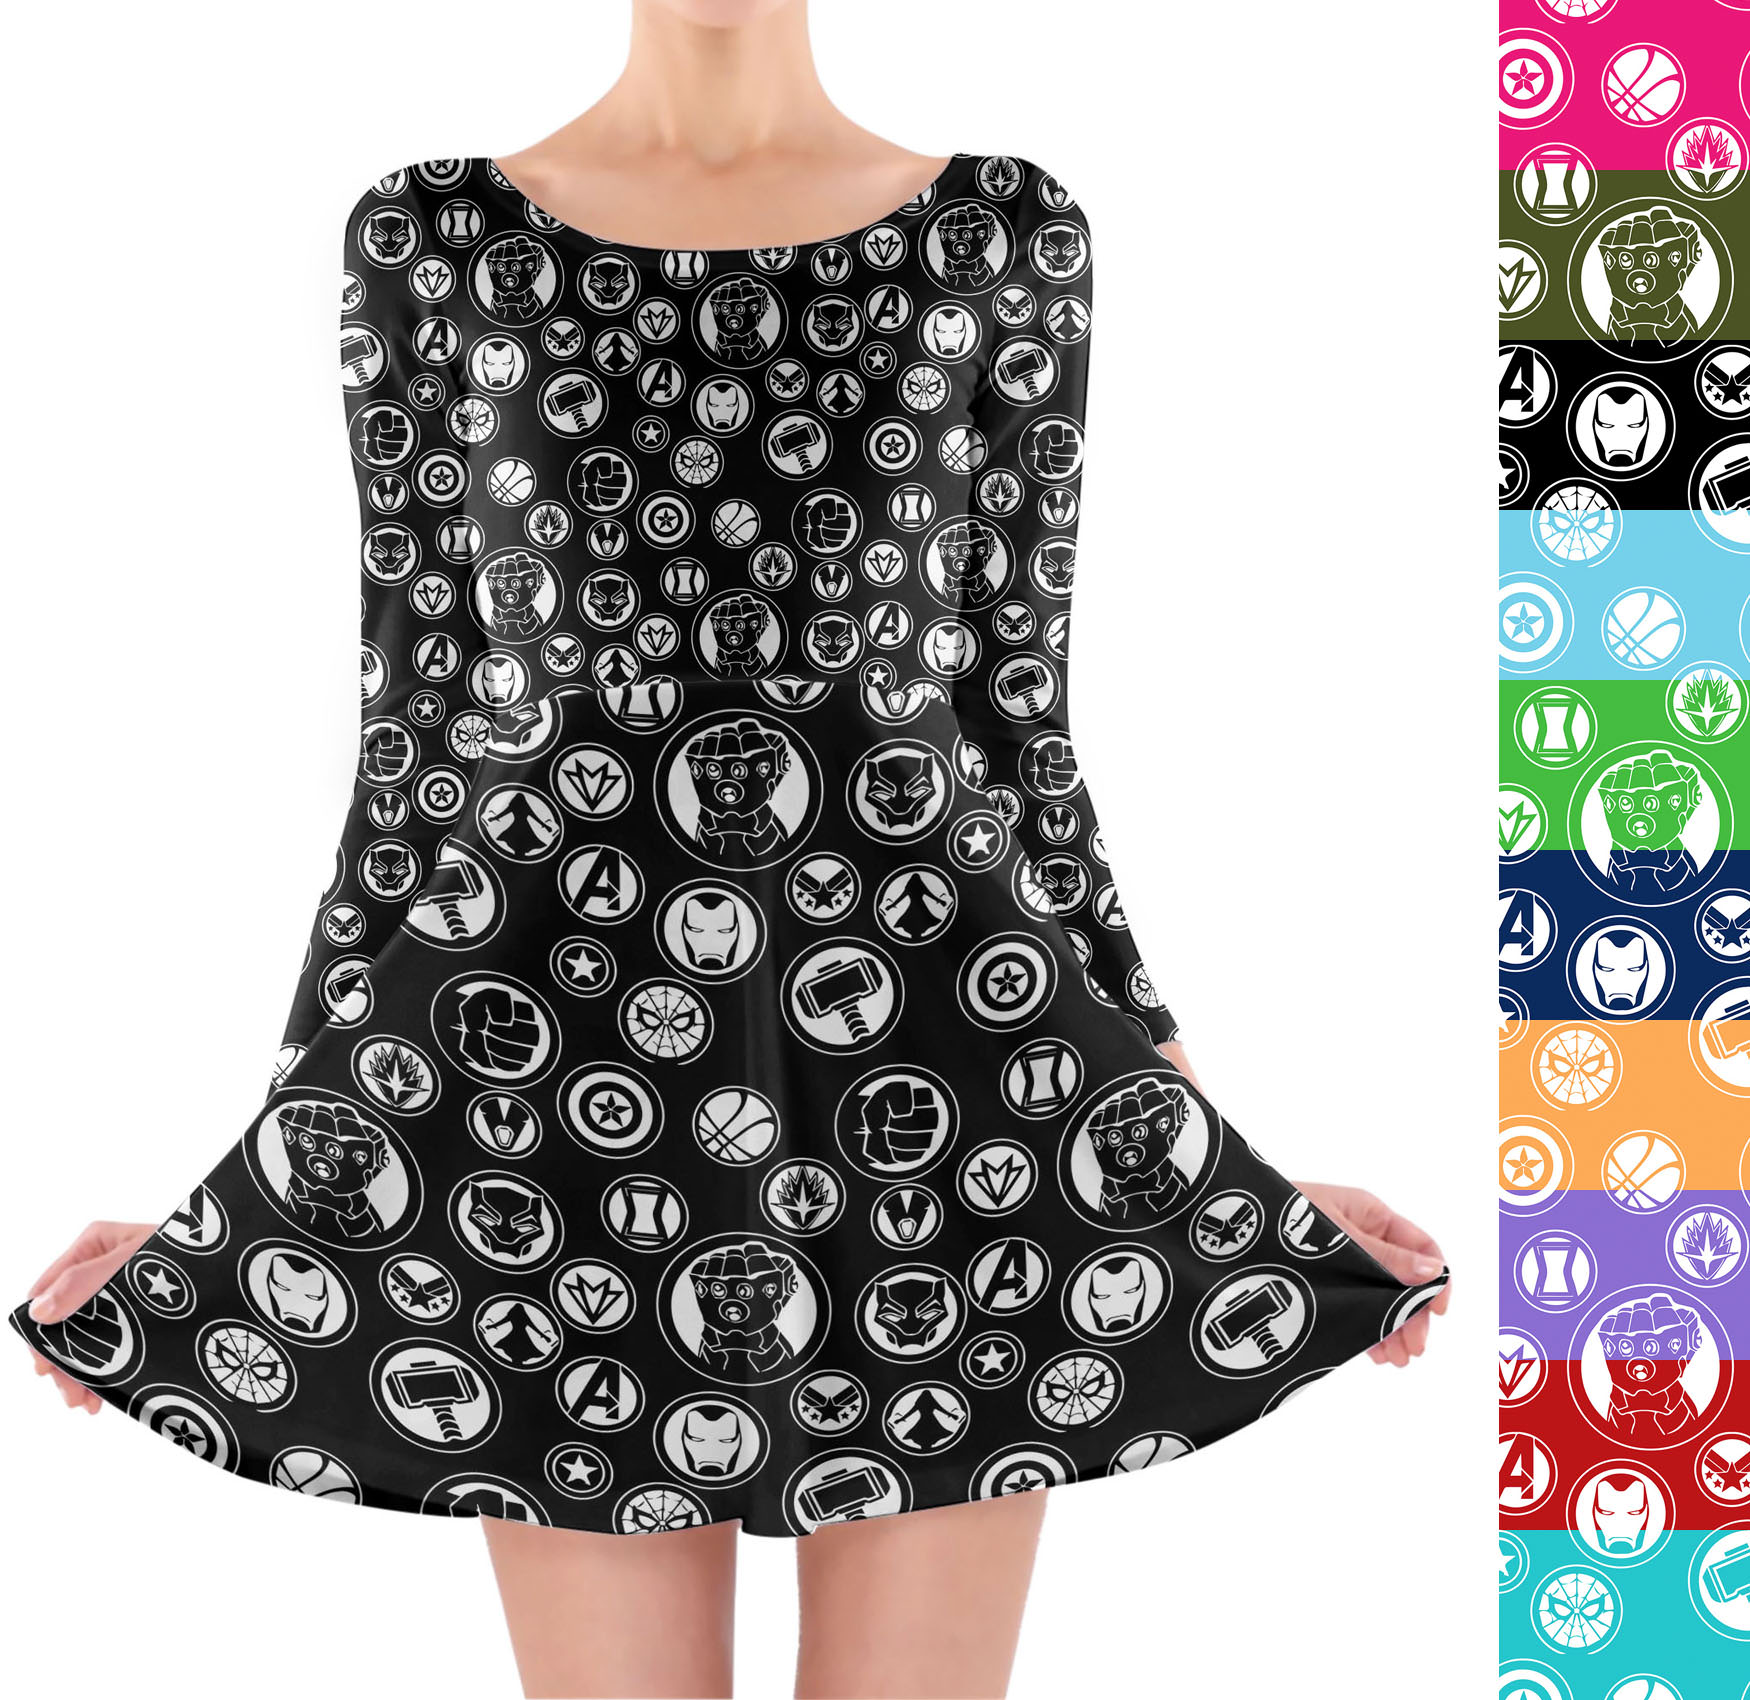 Details about Avengers Infinity War Superhero Inspired Longsleeve Skater  Dress XS-3XL All-Over 0eb6af8bc77